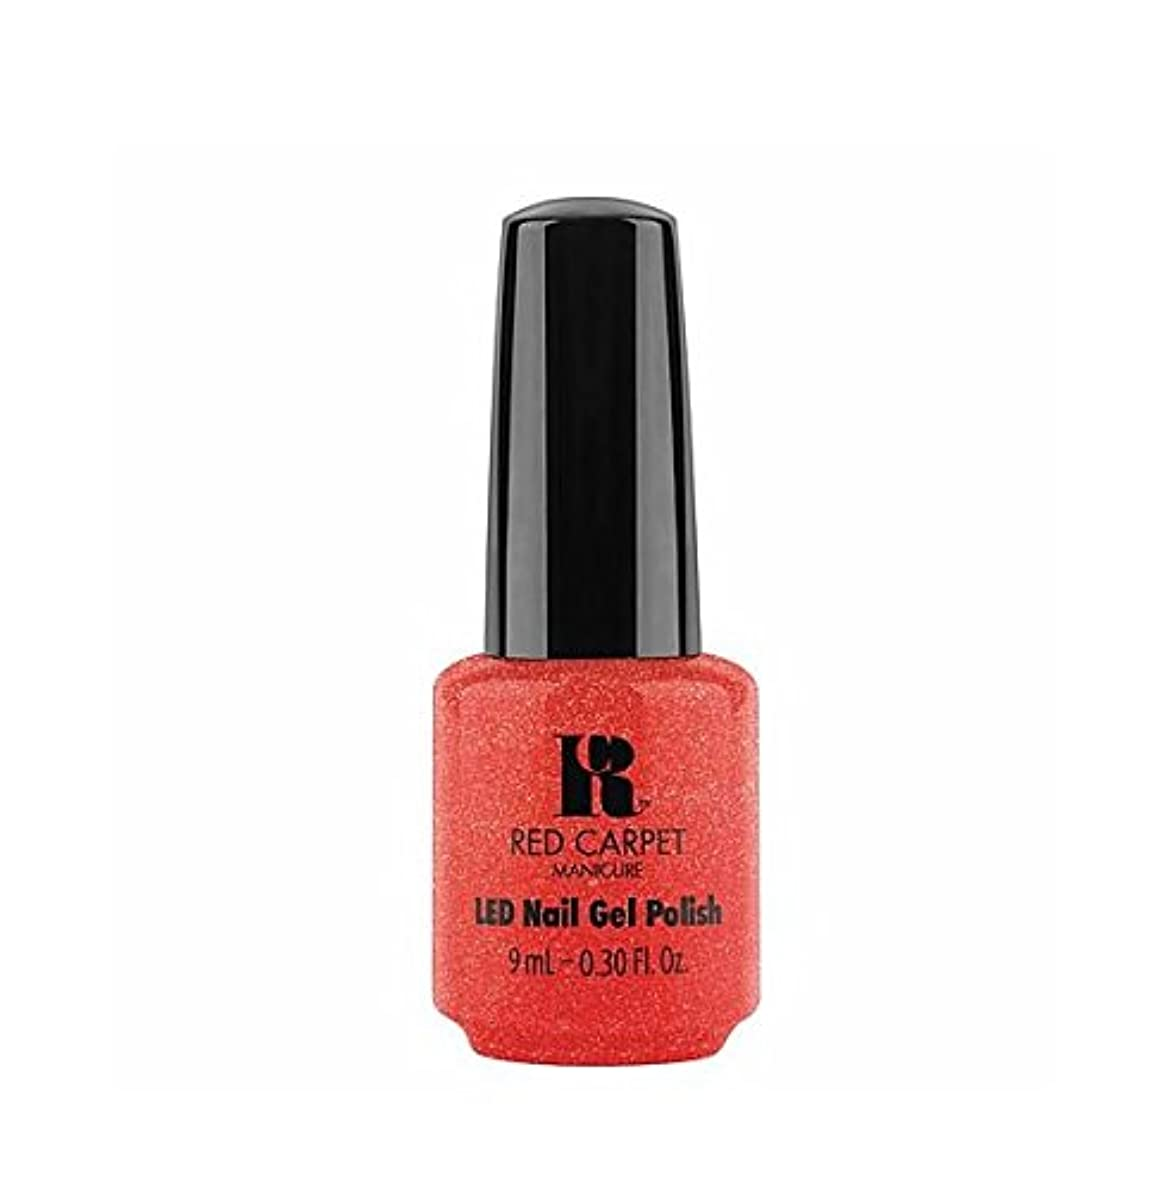 Red Carpet Manicure LED Gel Polish - Riding On Rodeo - 9 ml/0.30 oz